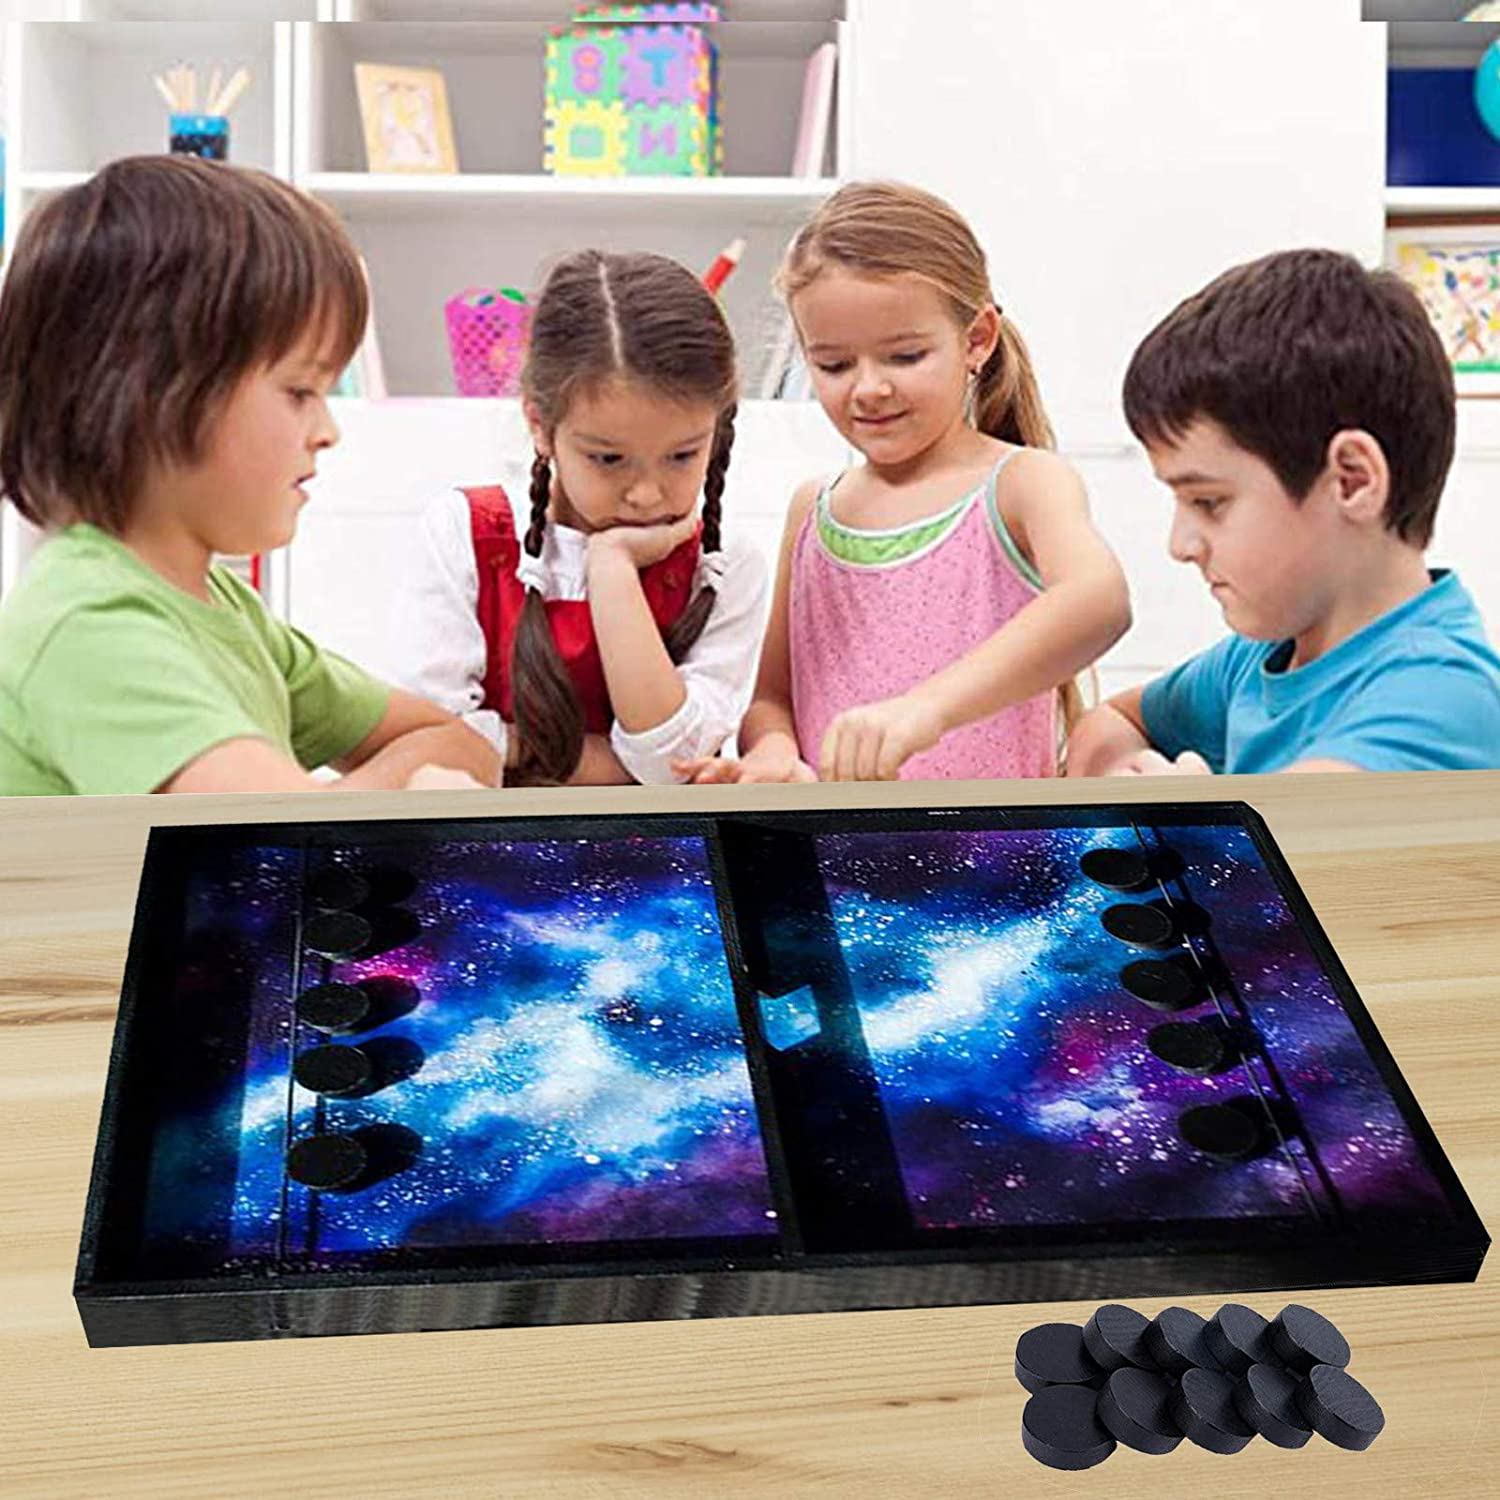 2021 Fast Sling Puck Game,Slingshot Games Toy,2 in 1 Table Desktop Battle Ice Hockey Game,Winner Board Games Toys for Parent-Child,Double Hole Table Football Game Board Table Game for Adults and Kids